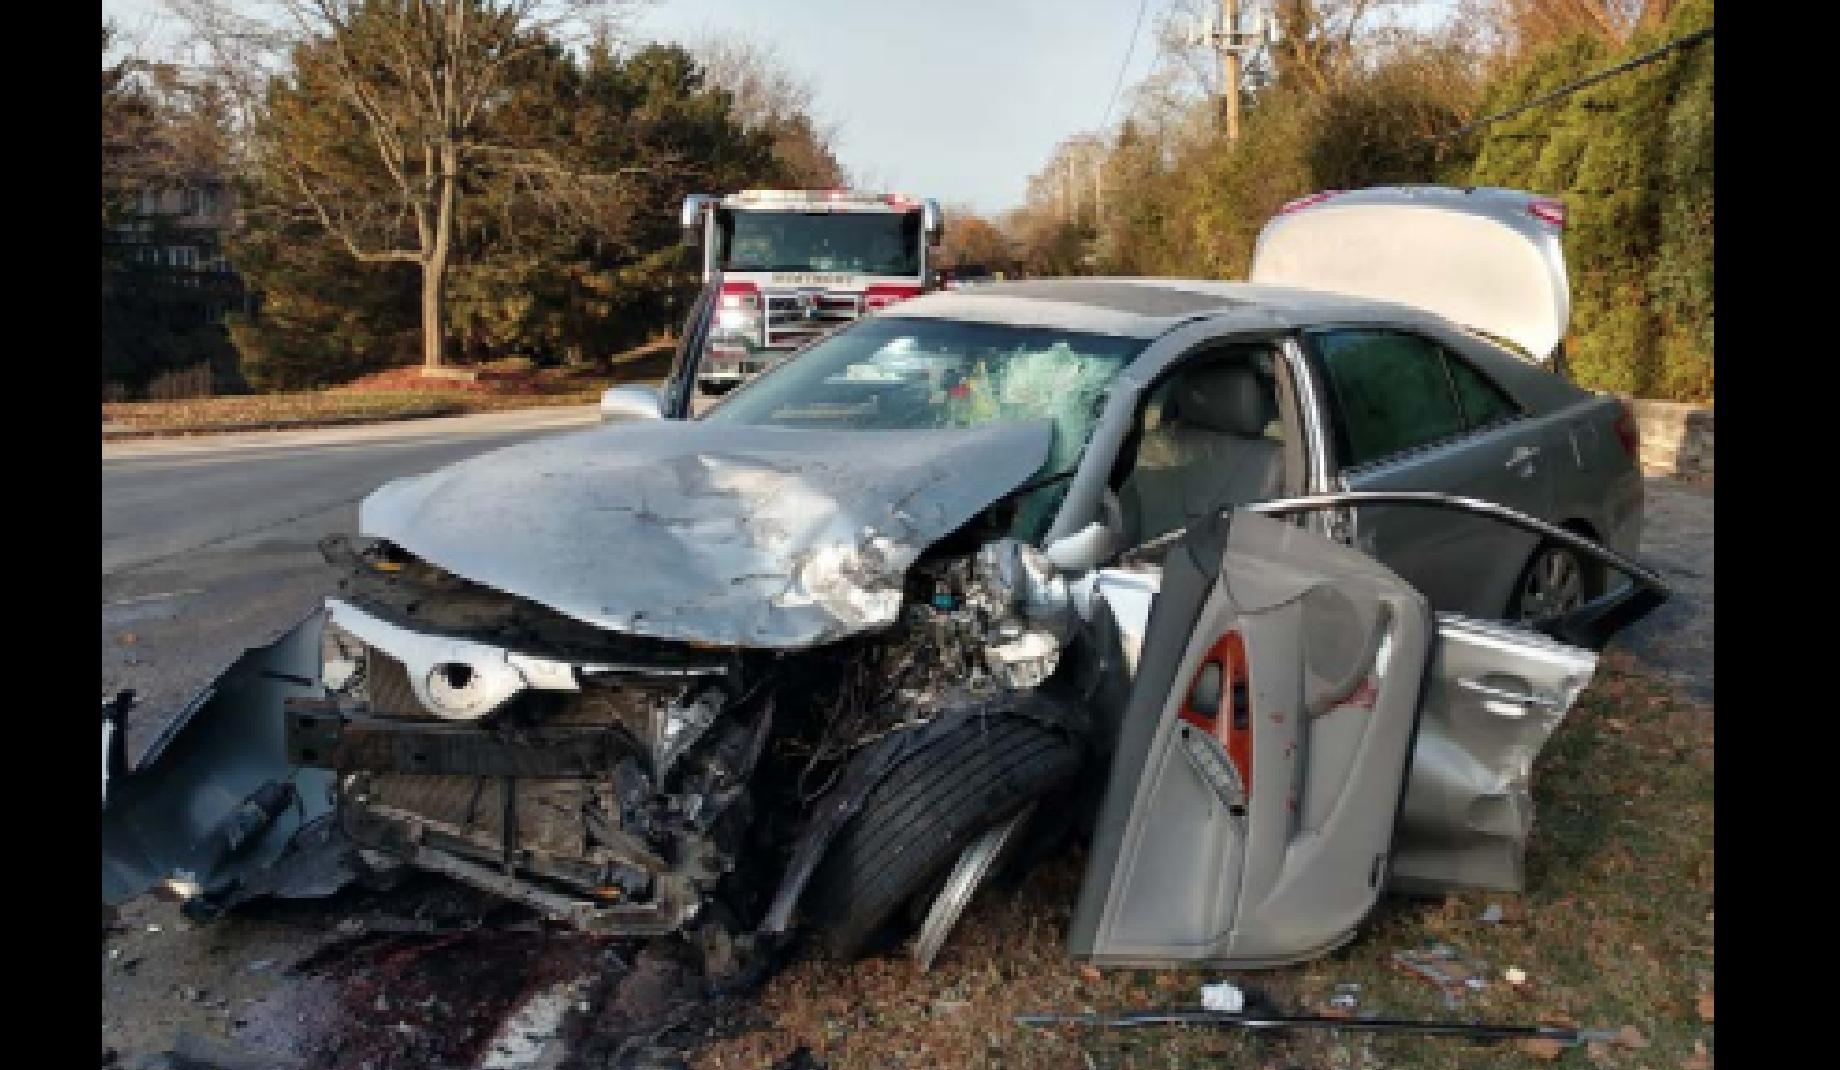 The driver of the Toyota, 78-year-old Florence Hsiao of Westmont, was taken to a hospital in critical condition Nov. 8, 2019 and later died.